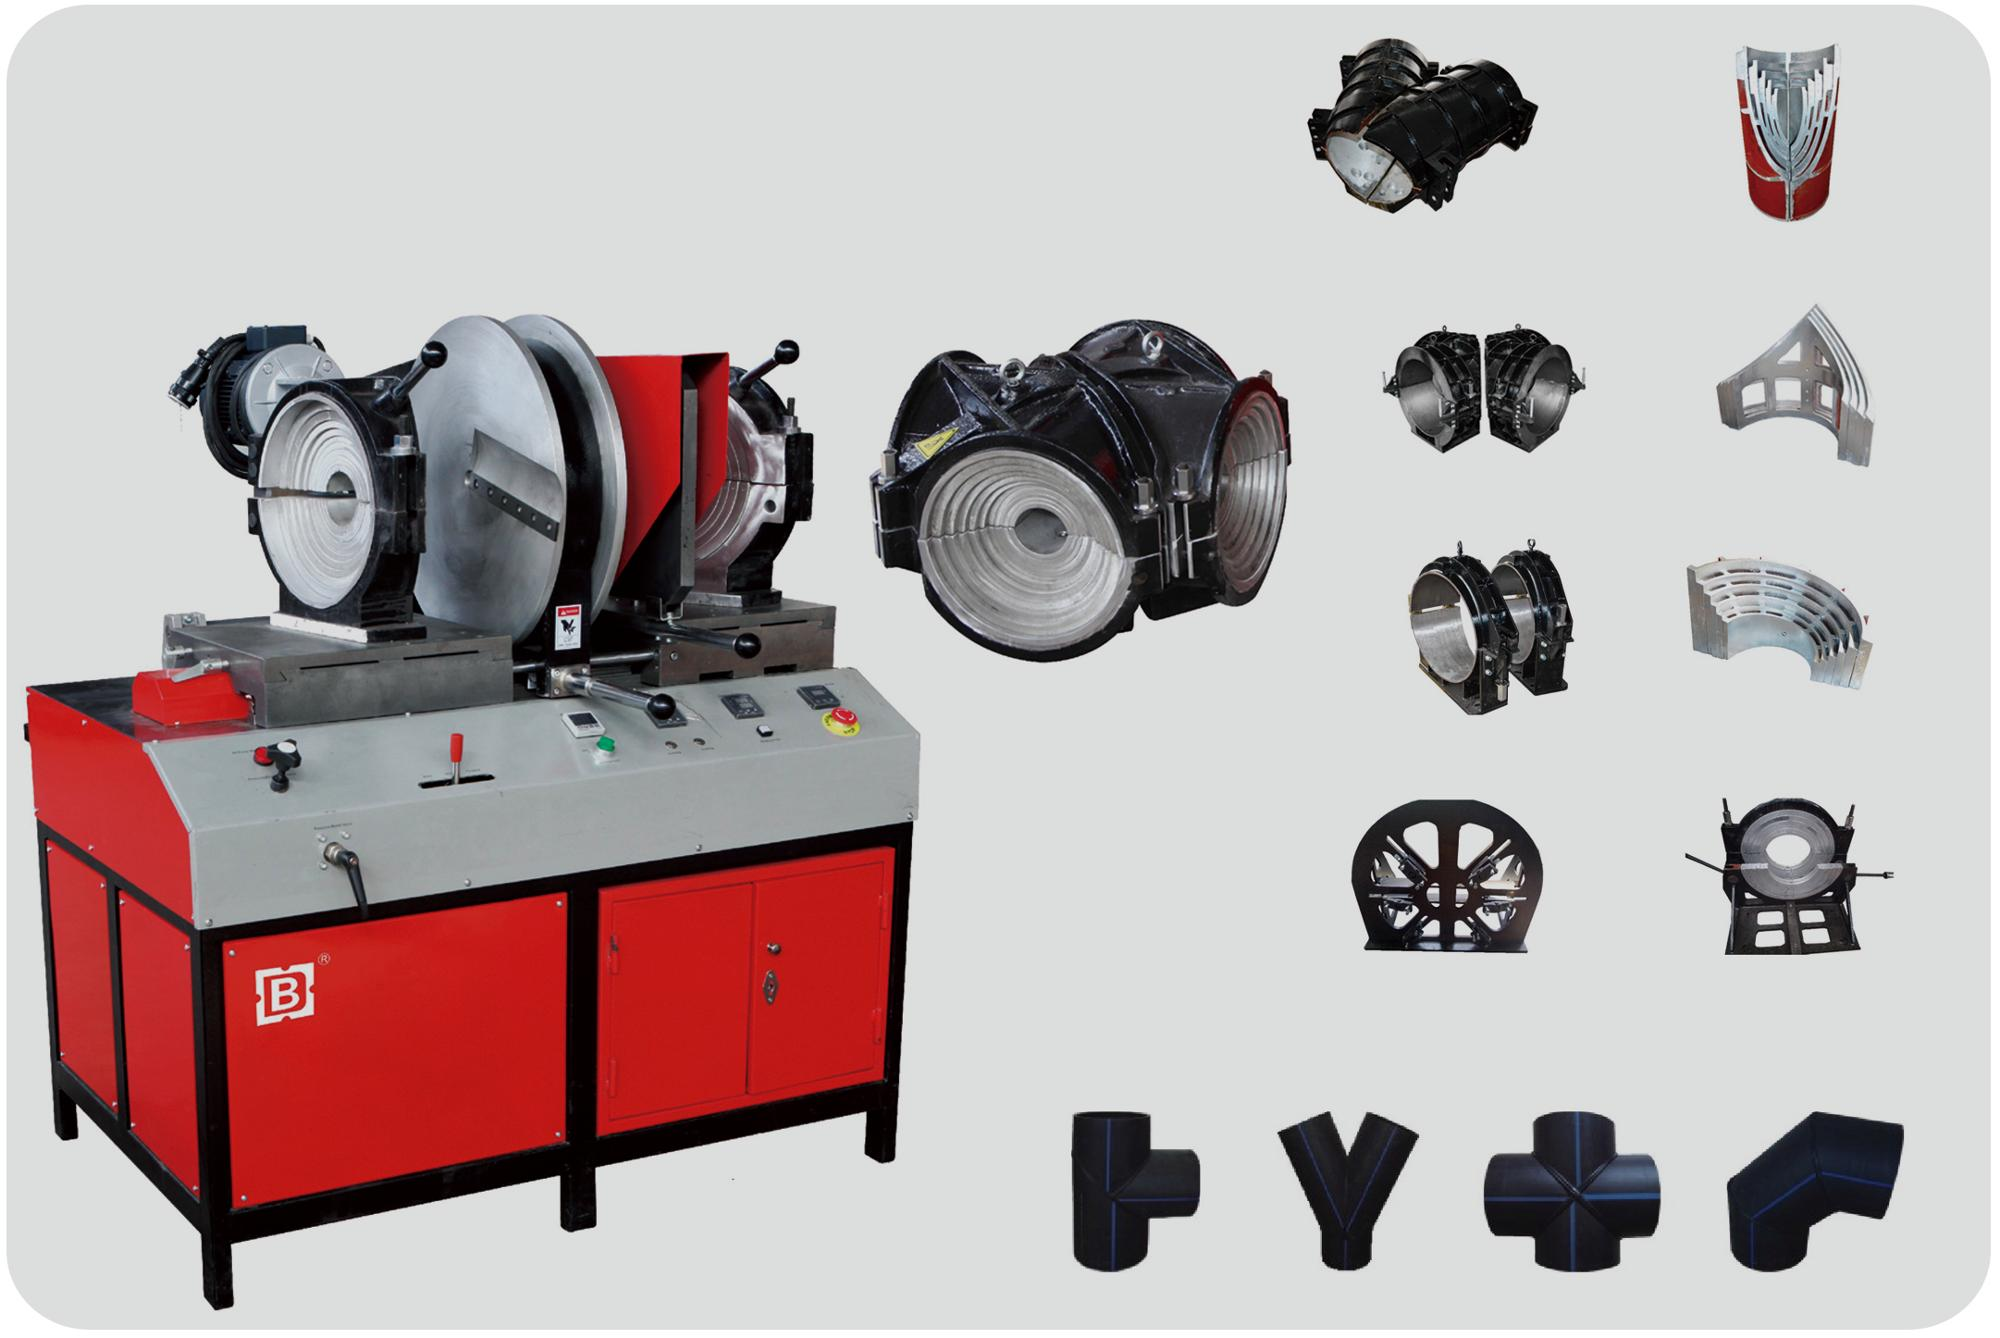 wuxi shengda SHG315 Workshop plastic pipe fitting fusion Welding Machine